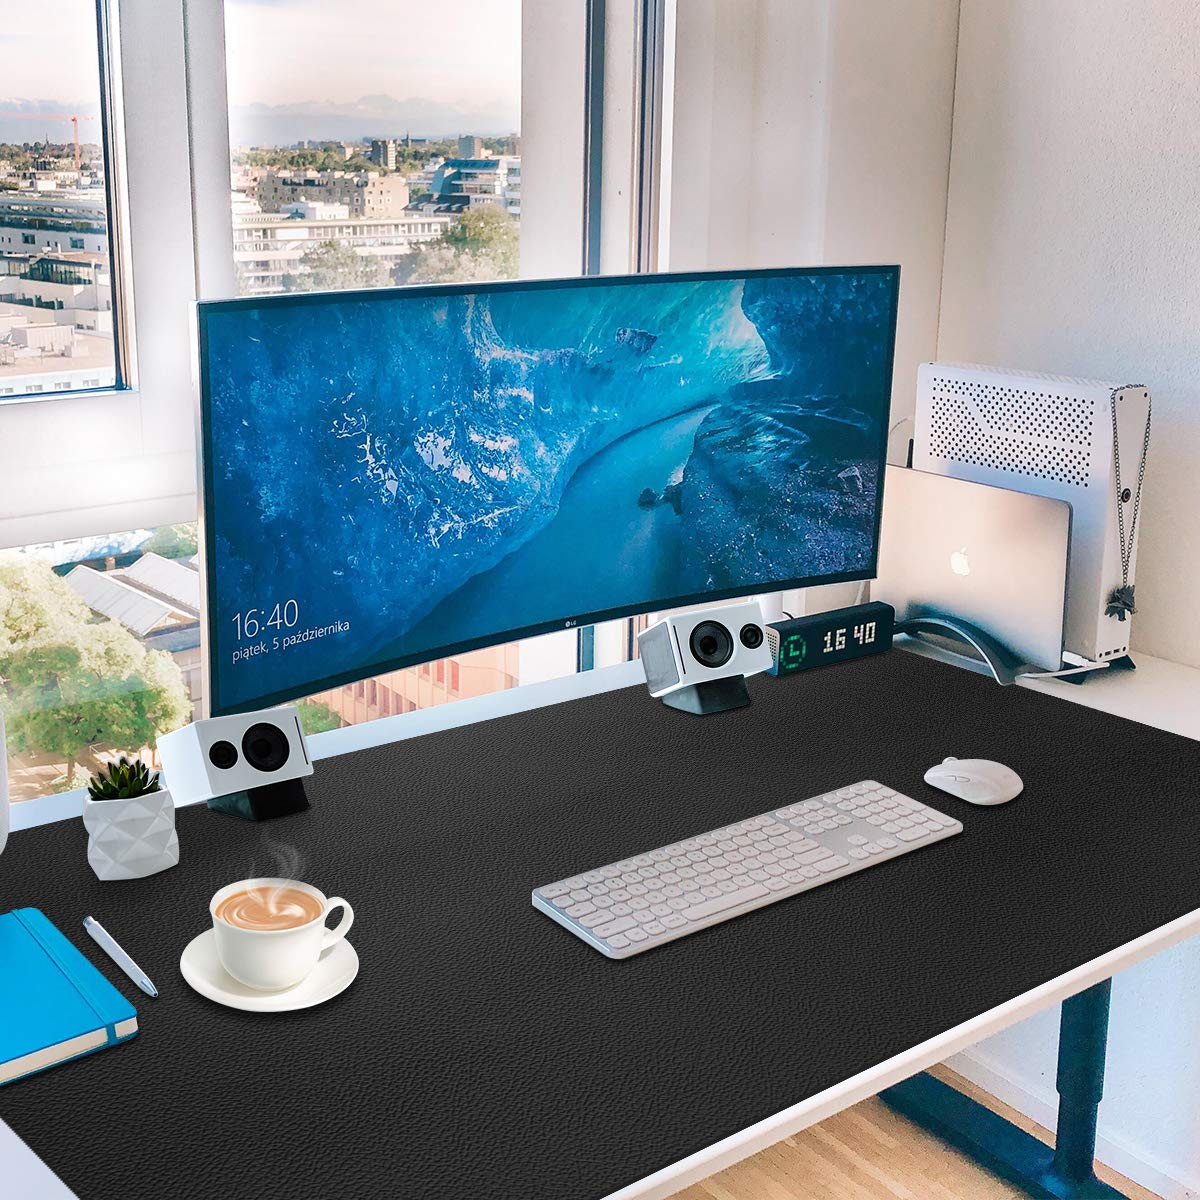 Leather Desk Pad Large,36'' x 20'',Gaming Mouse,Extended Blotter Protector,Toneseas Premium Writing Mat,Durable,Water Resistant,Oil-Proof,Dust-Proof for Office Supplies Back to School College by Toneseas